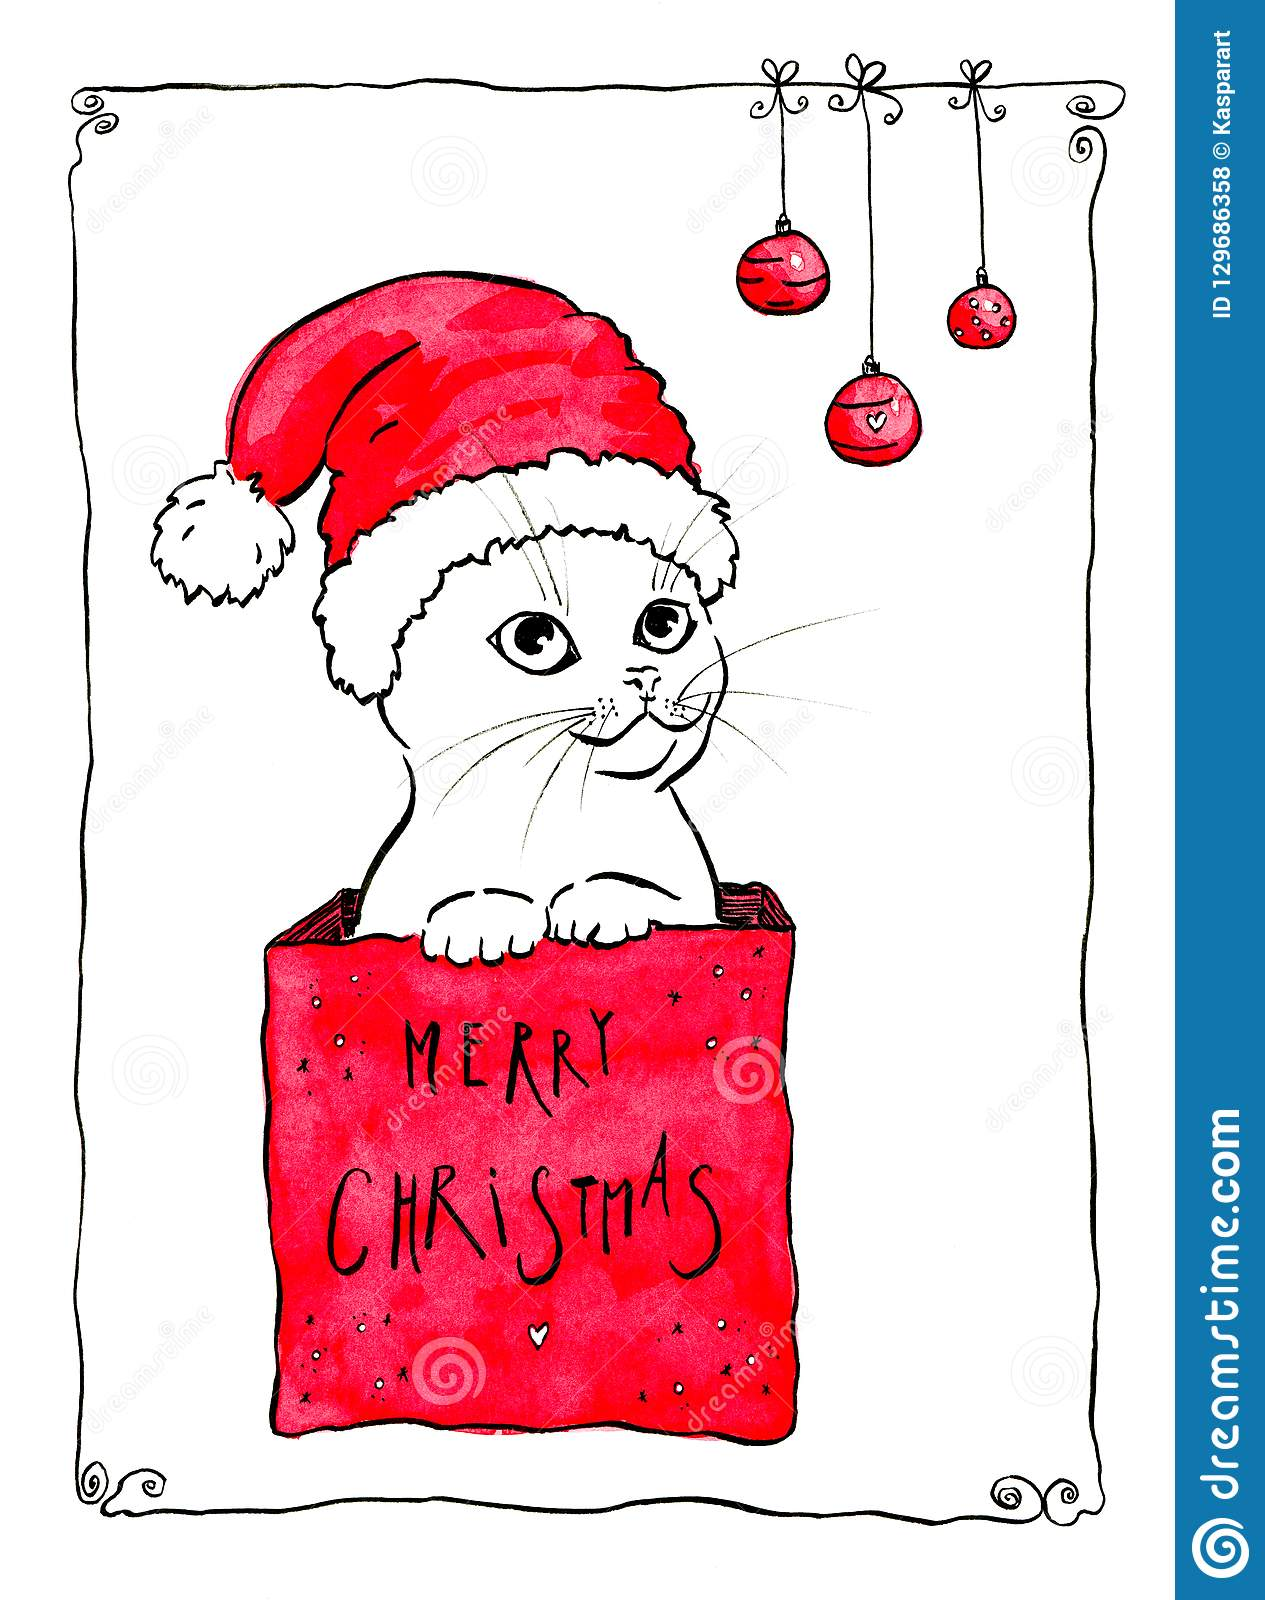 Merry Christmas Cute Cat Christmas Card Design Stock Illustration Illustration Of Greeting Drawing 129686358